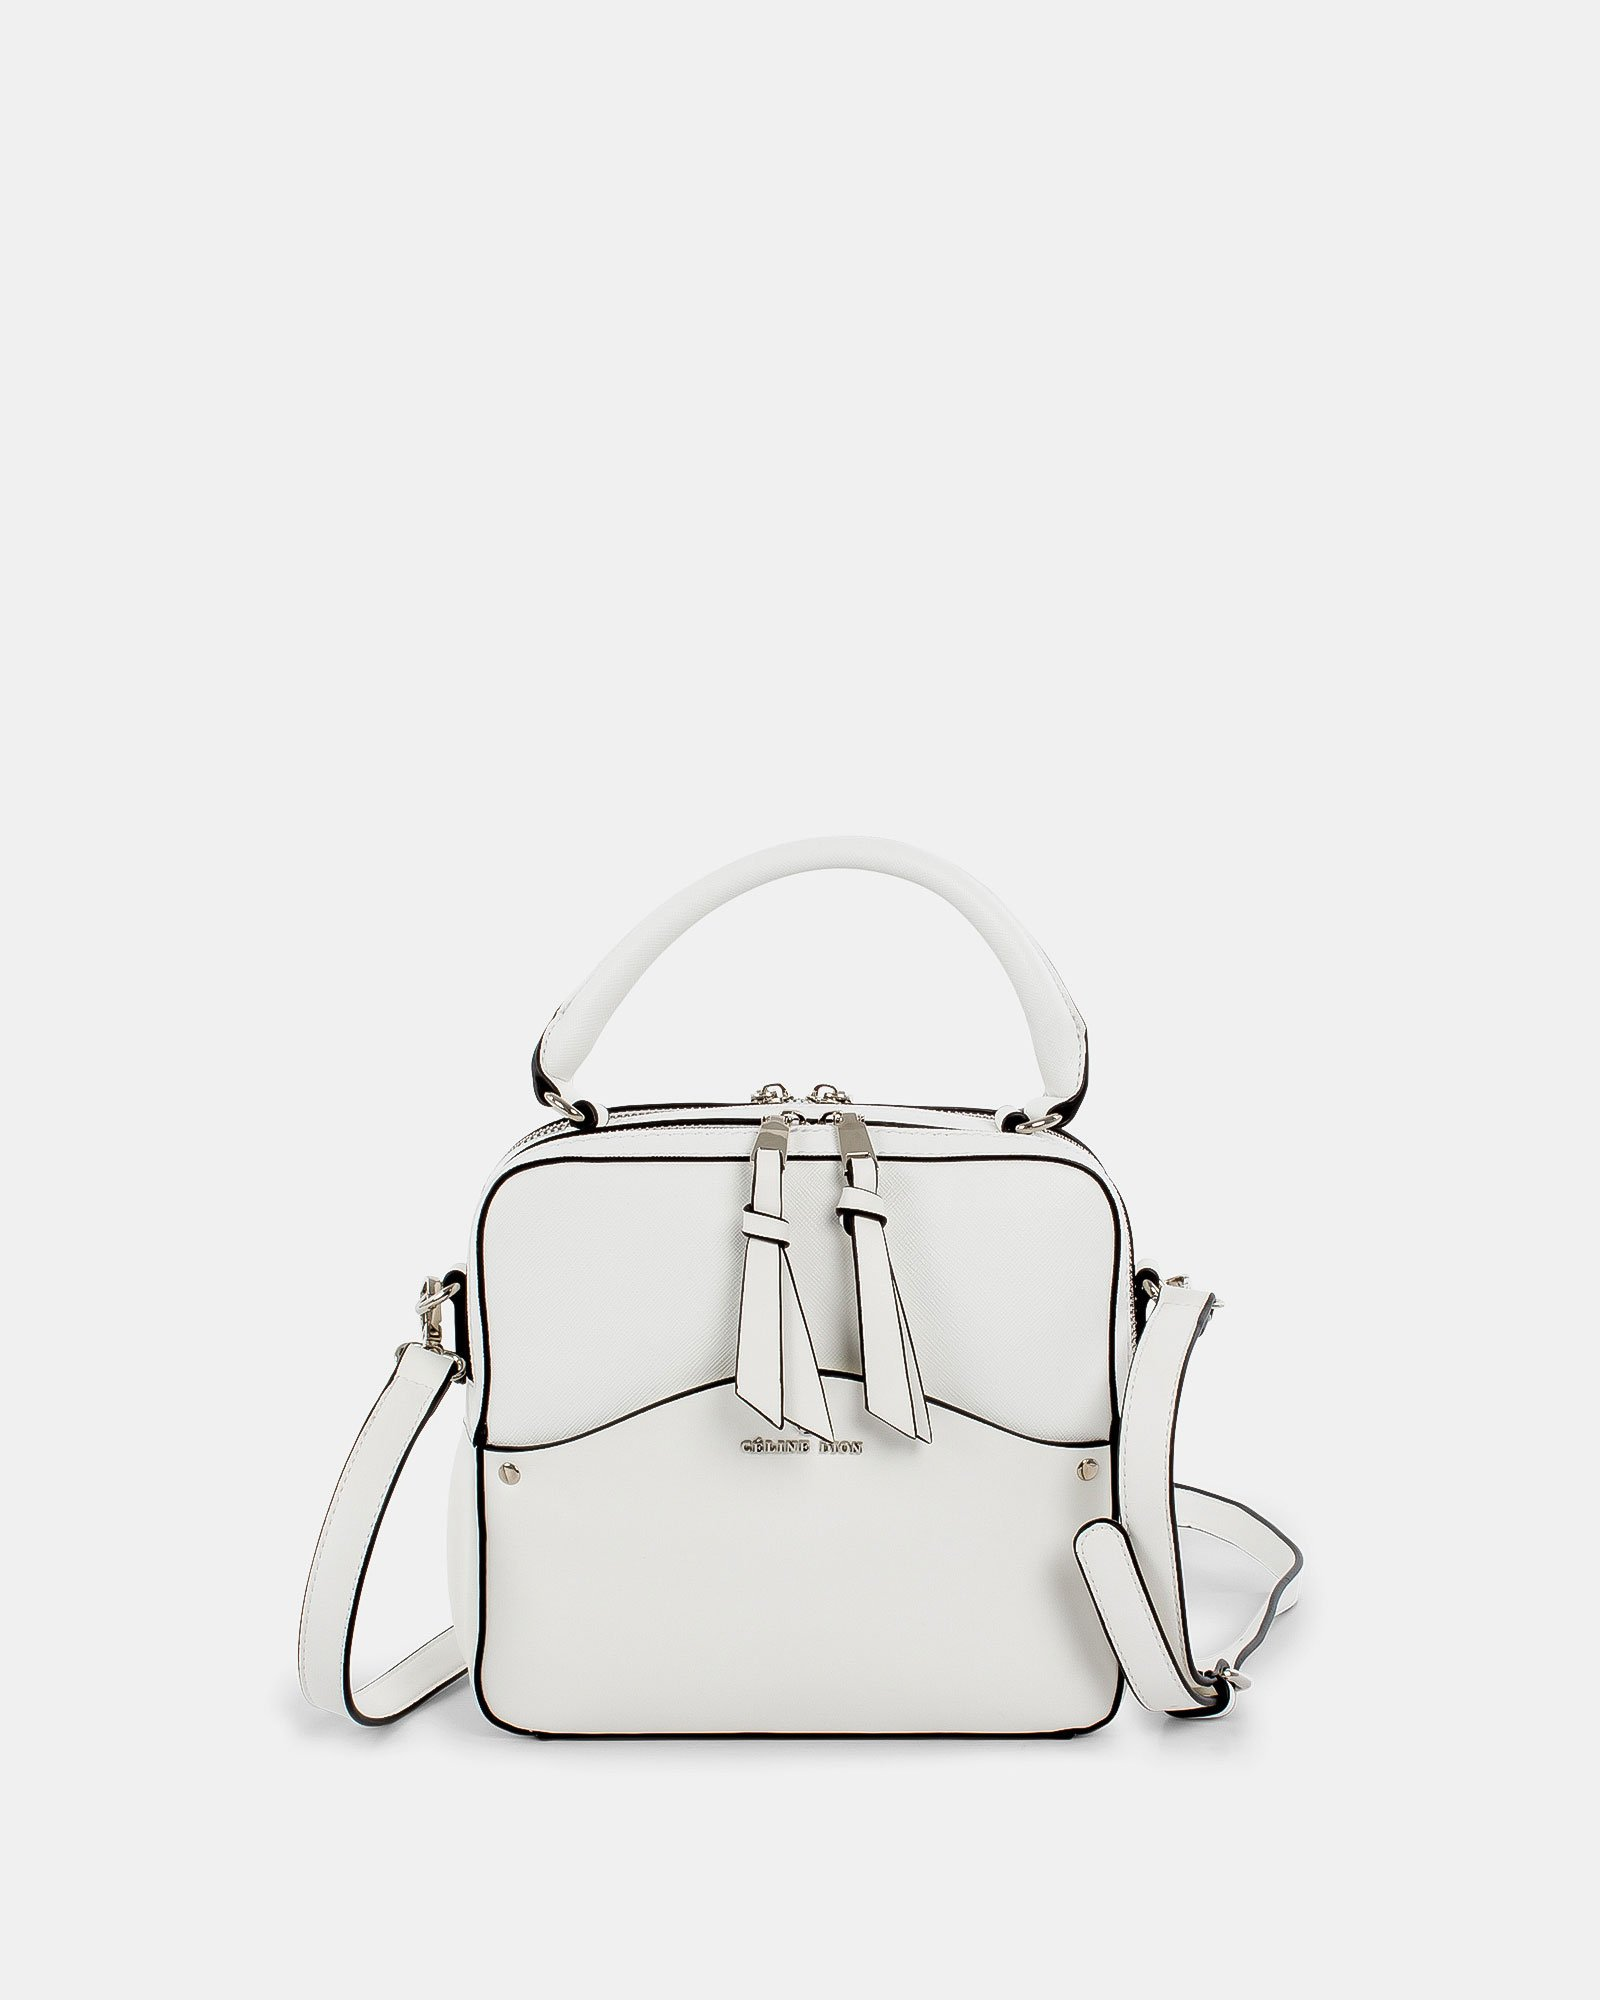 MOTIF - Handle Bag with adjustable and removable strap - White - Céline Dion - Zoom